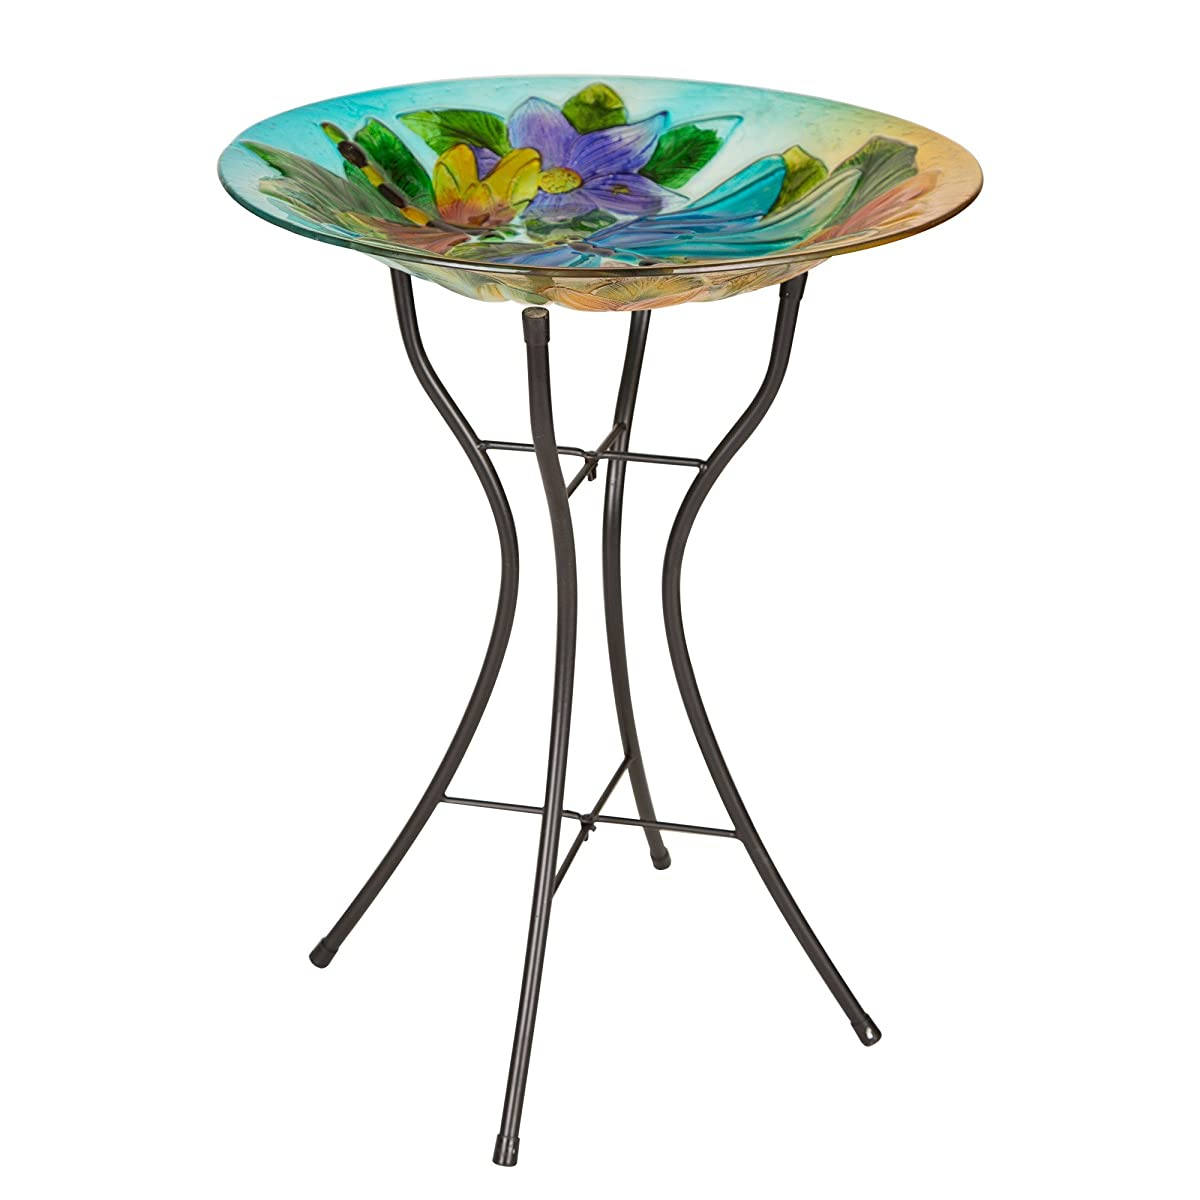 Glitzhome 24 Inch H Fused Dragonfly Glass Garden Bird Bath With Metal Stand